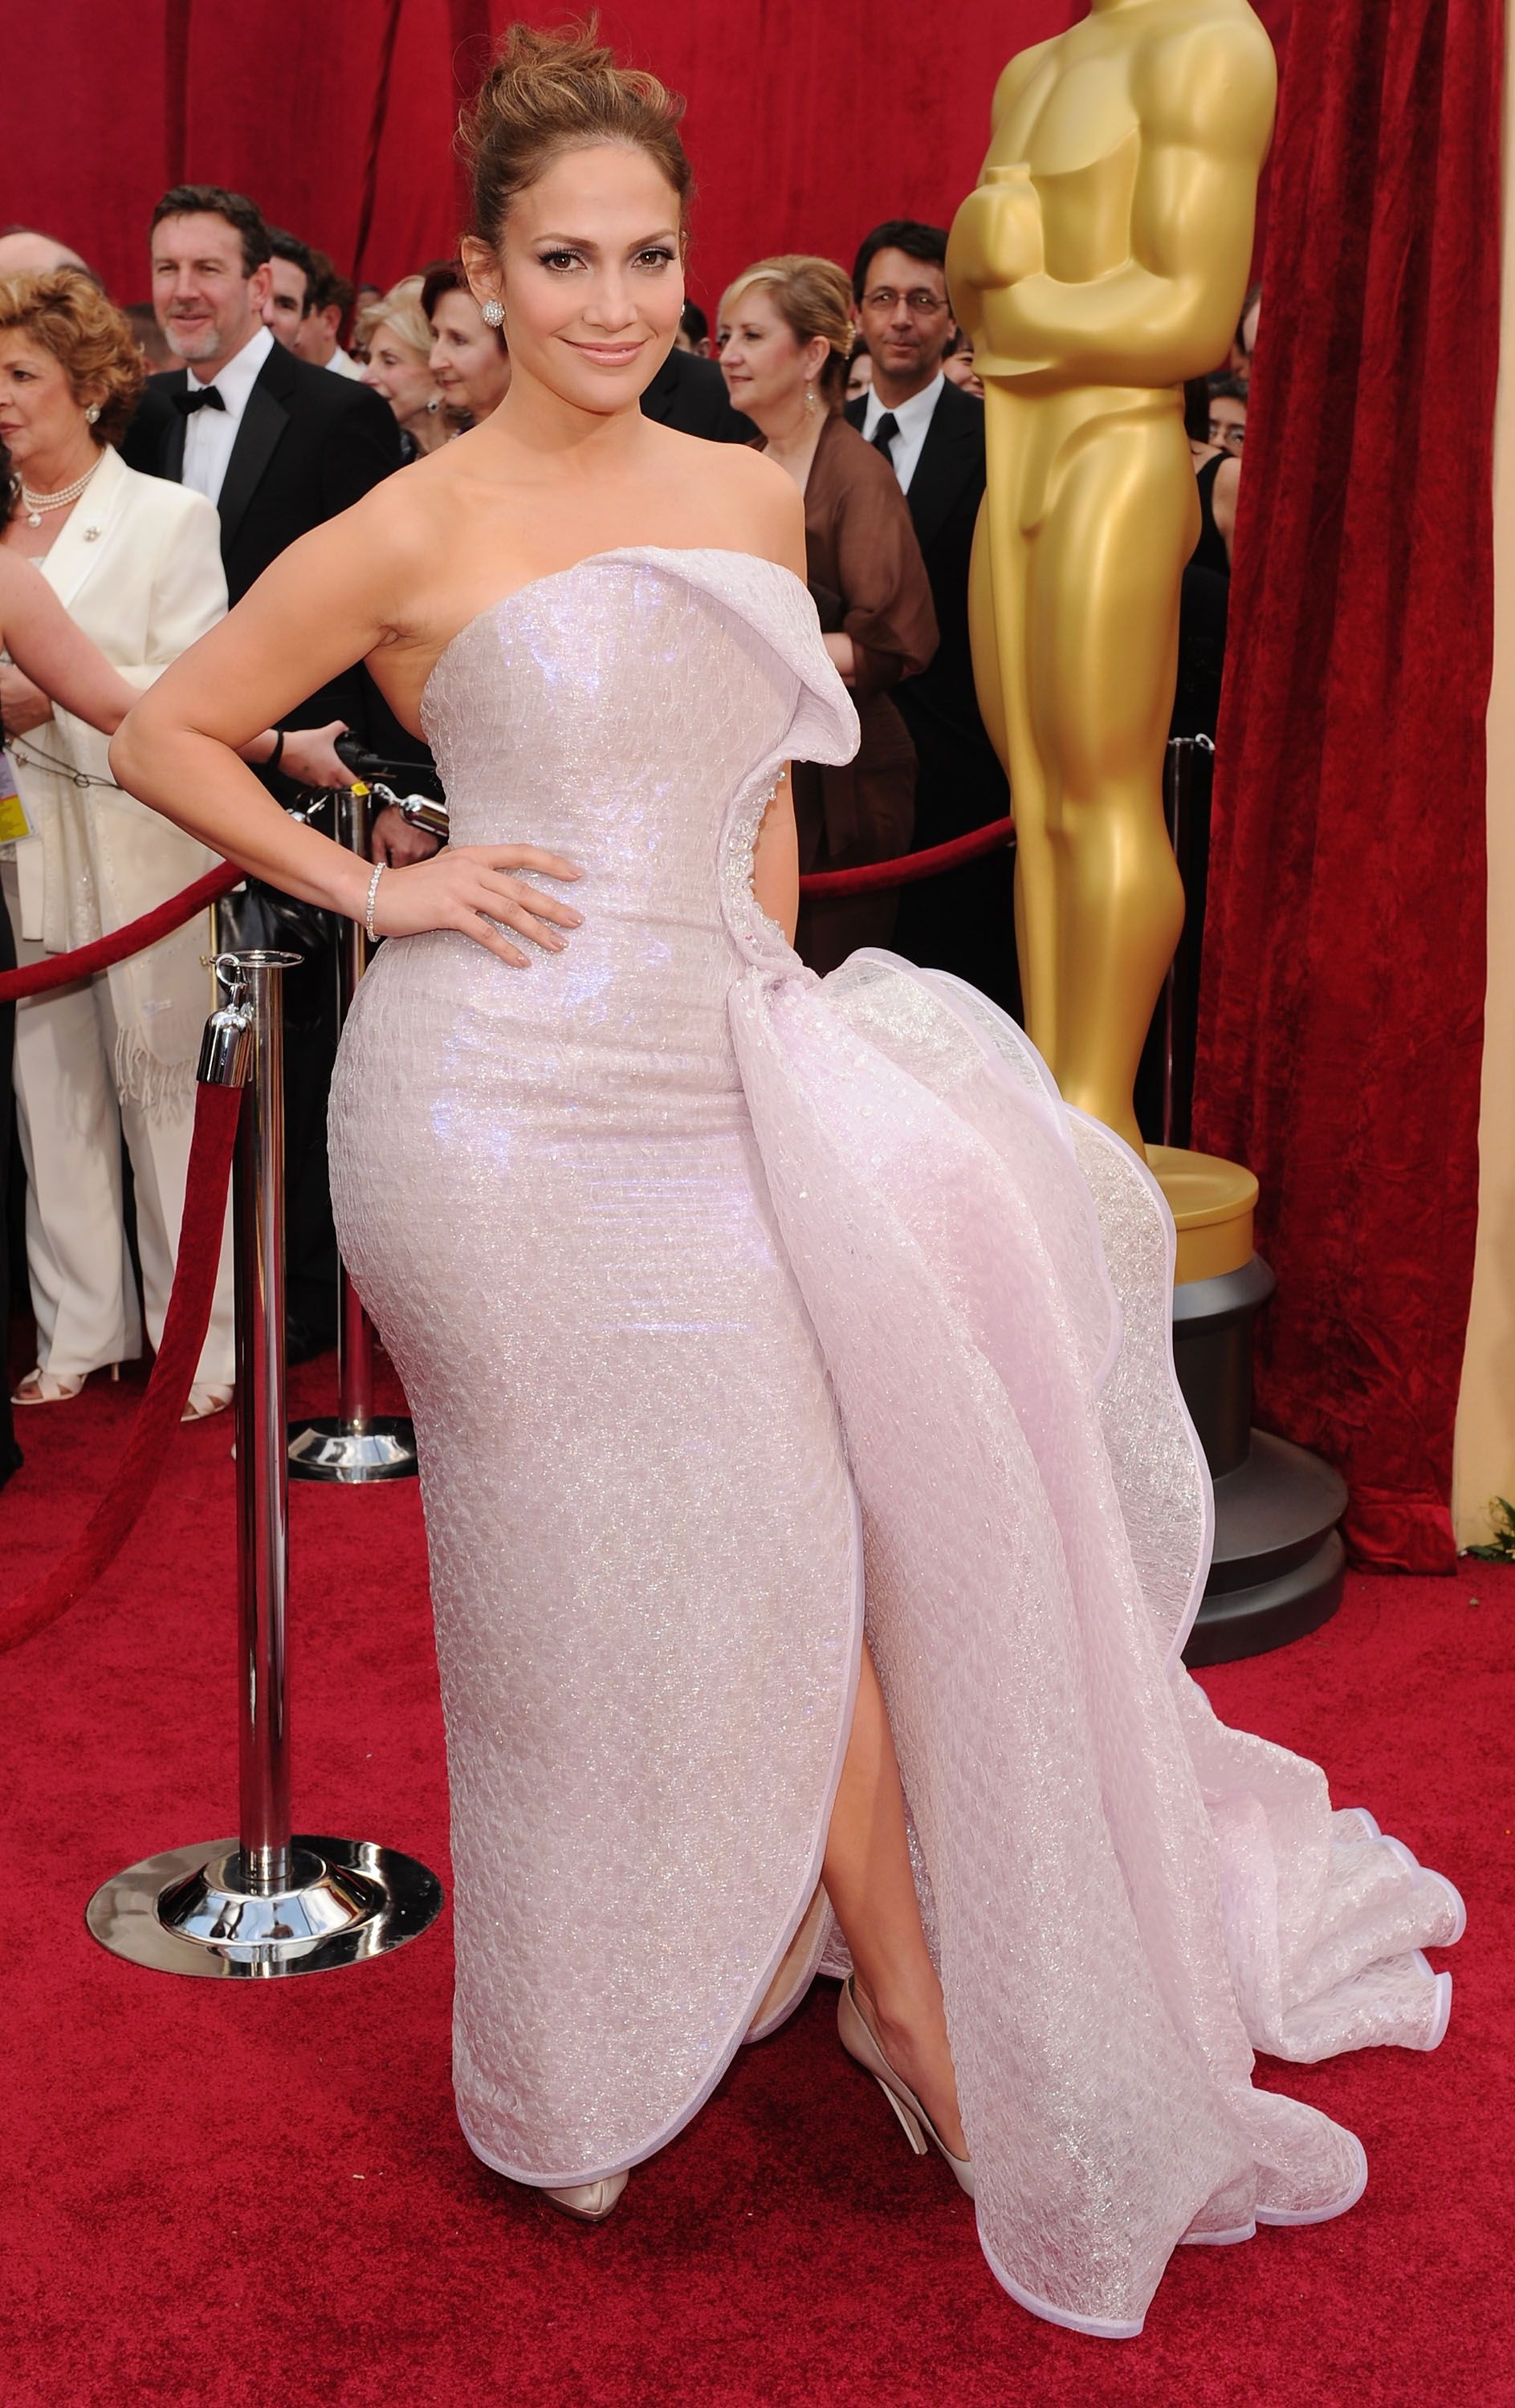 Jennifer Lopez at the 82nd Annual Academy Awards in 2010 in Hollywood, California | Getty Images